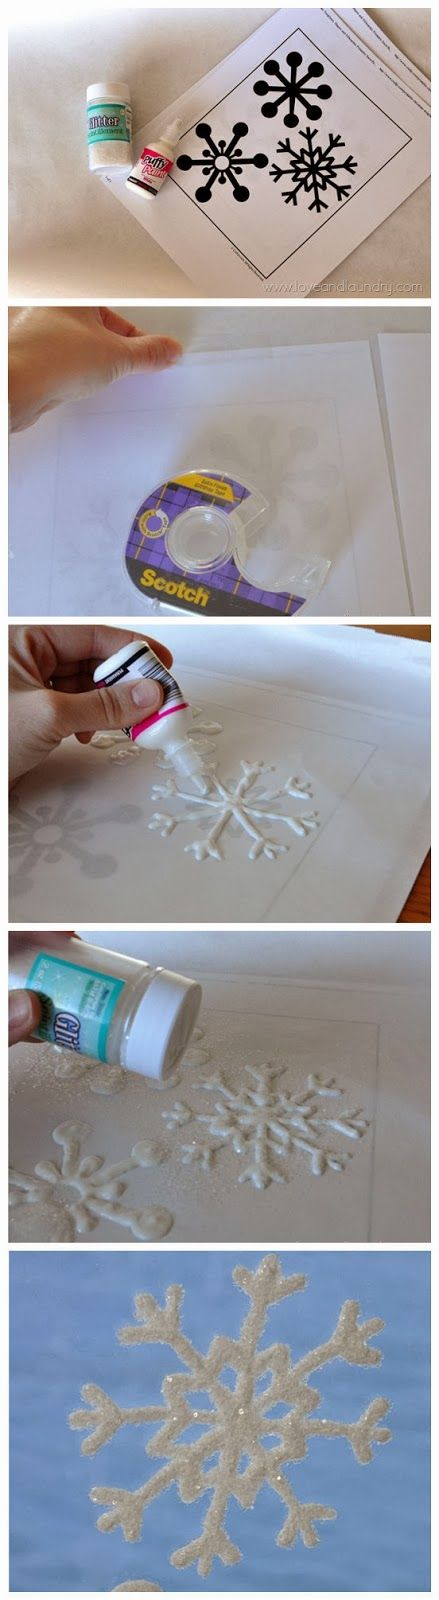 DIY Glitter Snowflake Window Clings